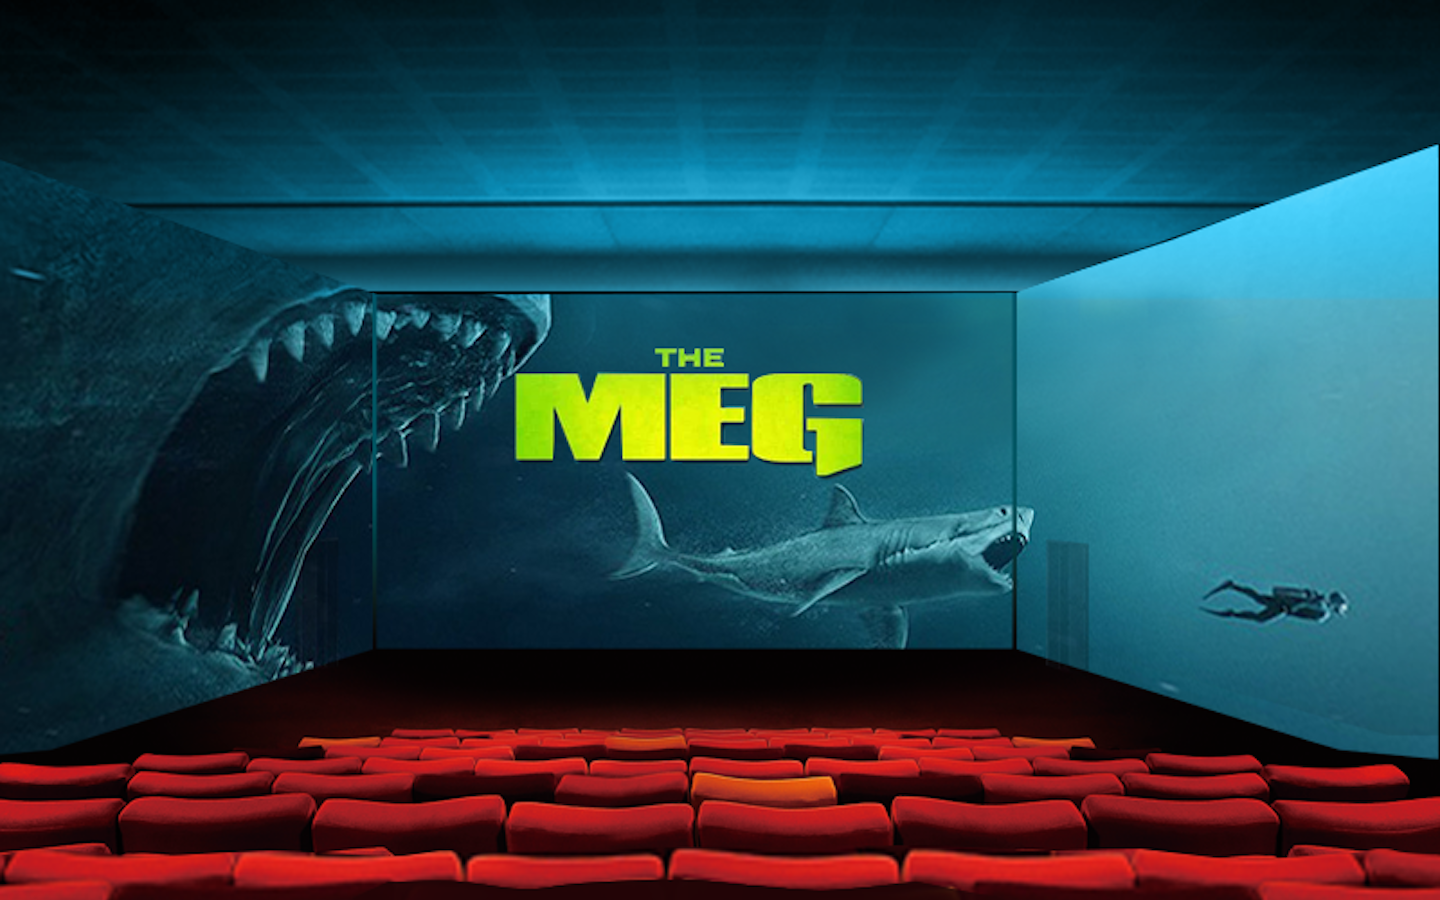 Reel Cinemas launch Screen X which features a 270 degree screen